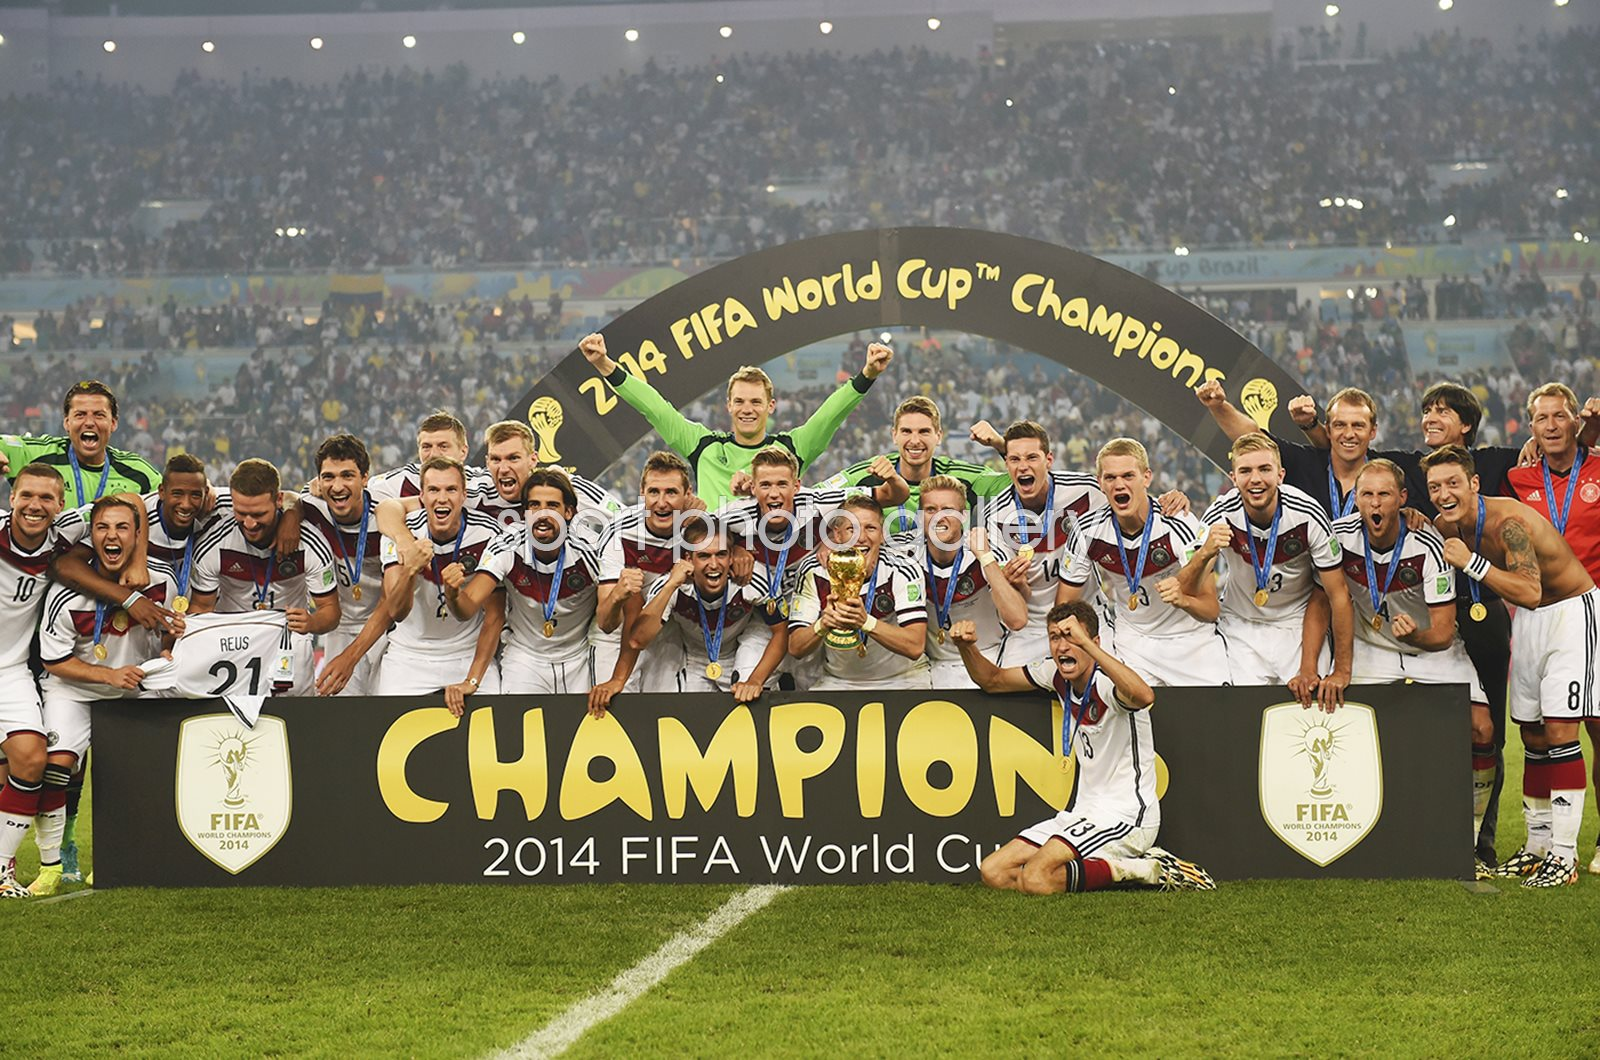 Germany World Cup Champions Brazil 2014